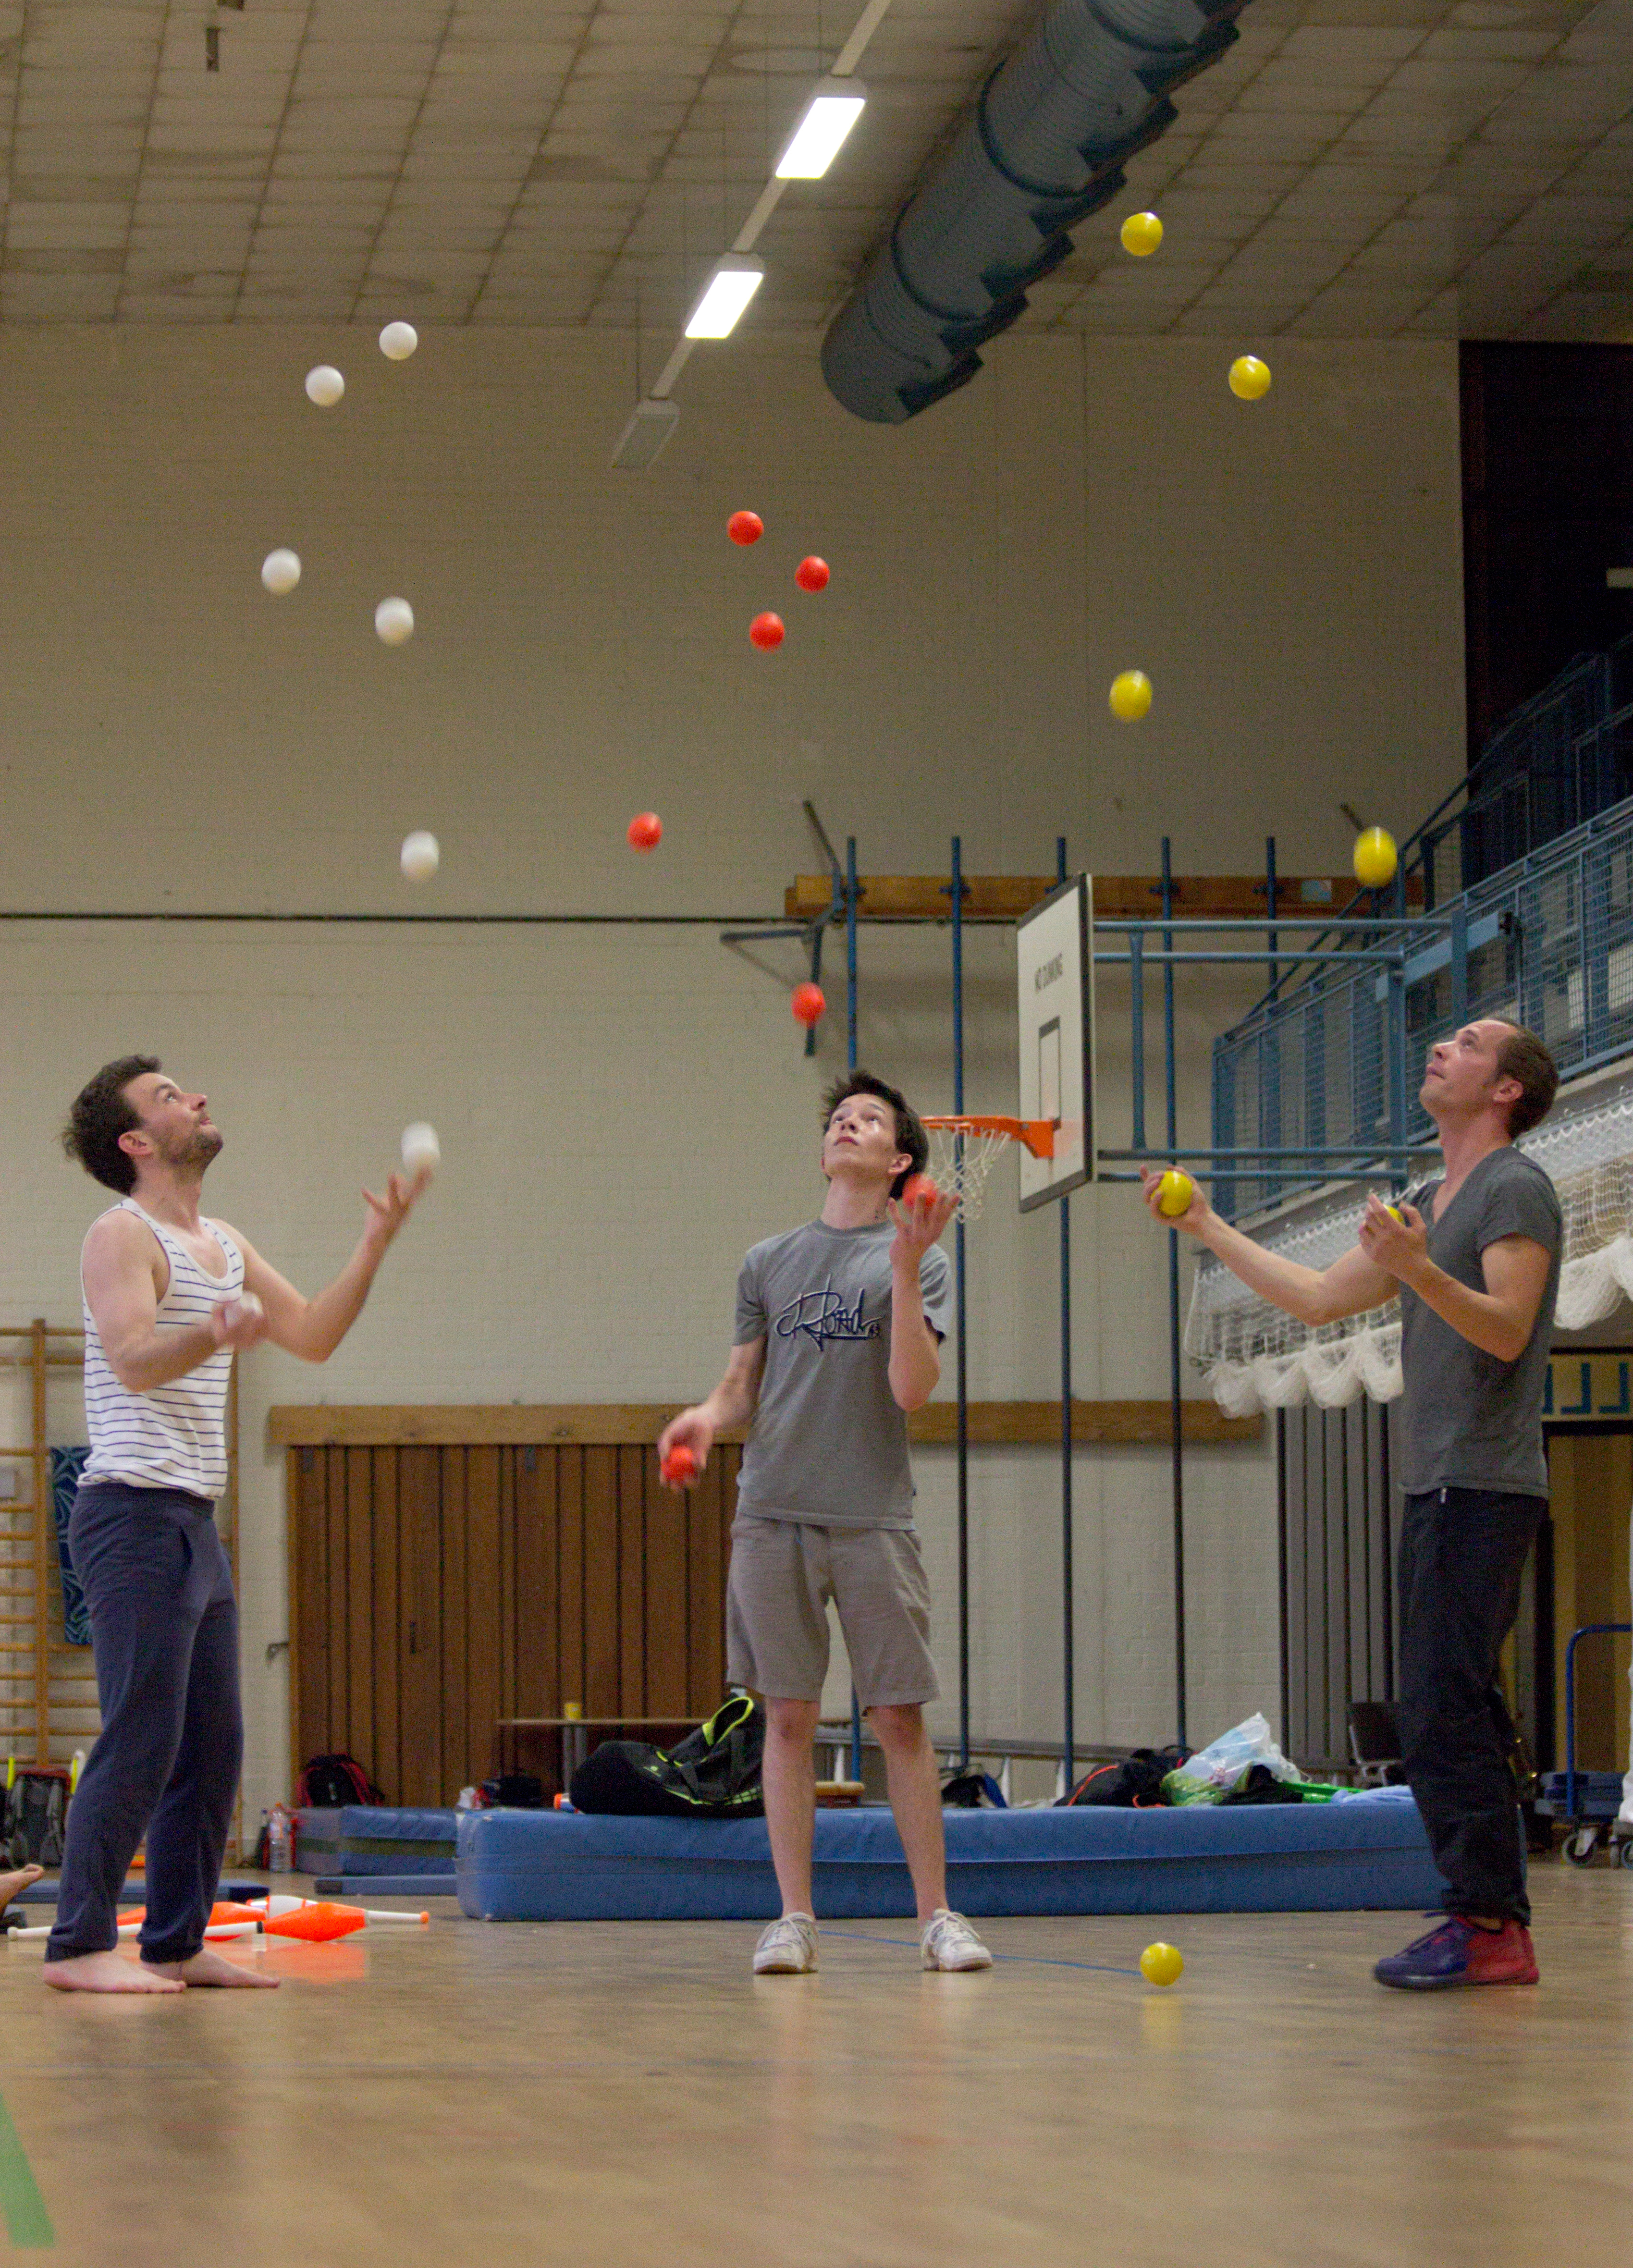 Berlin Juggling Convention 2013: In the gym.